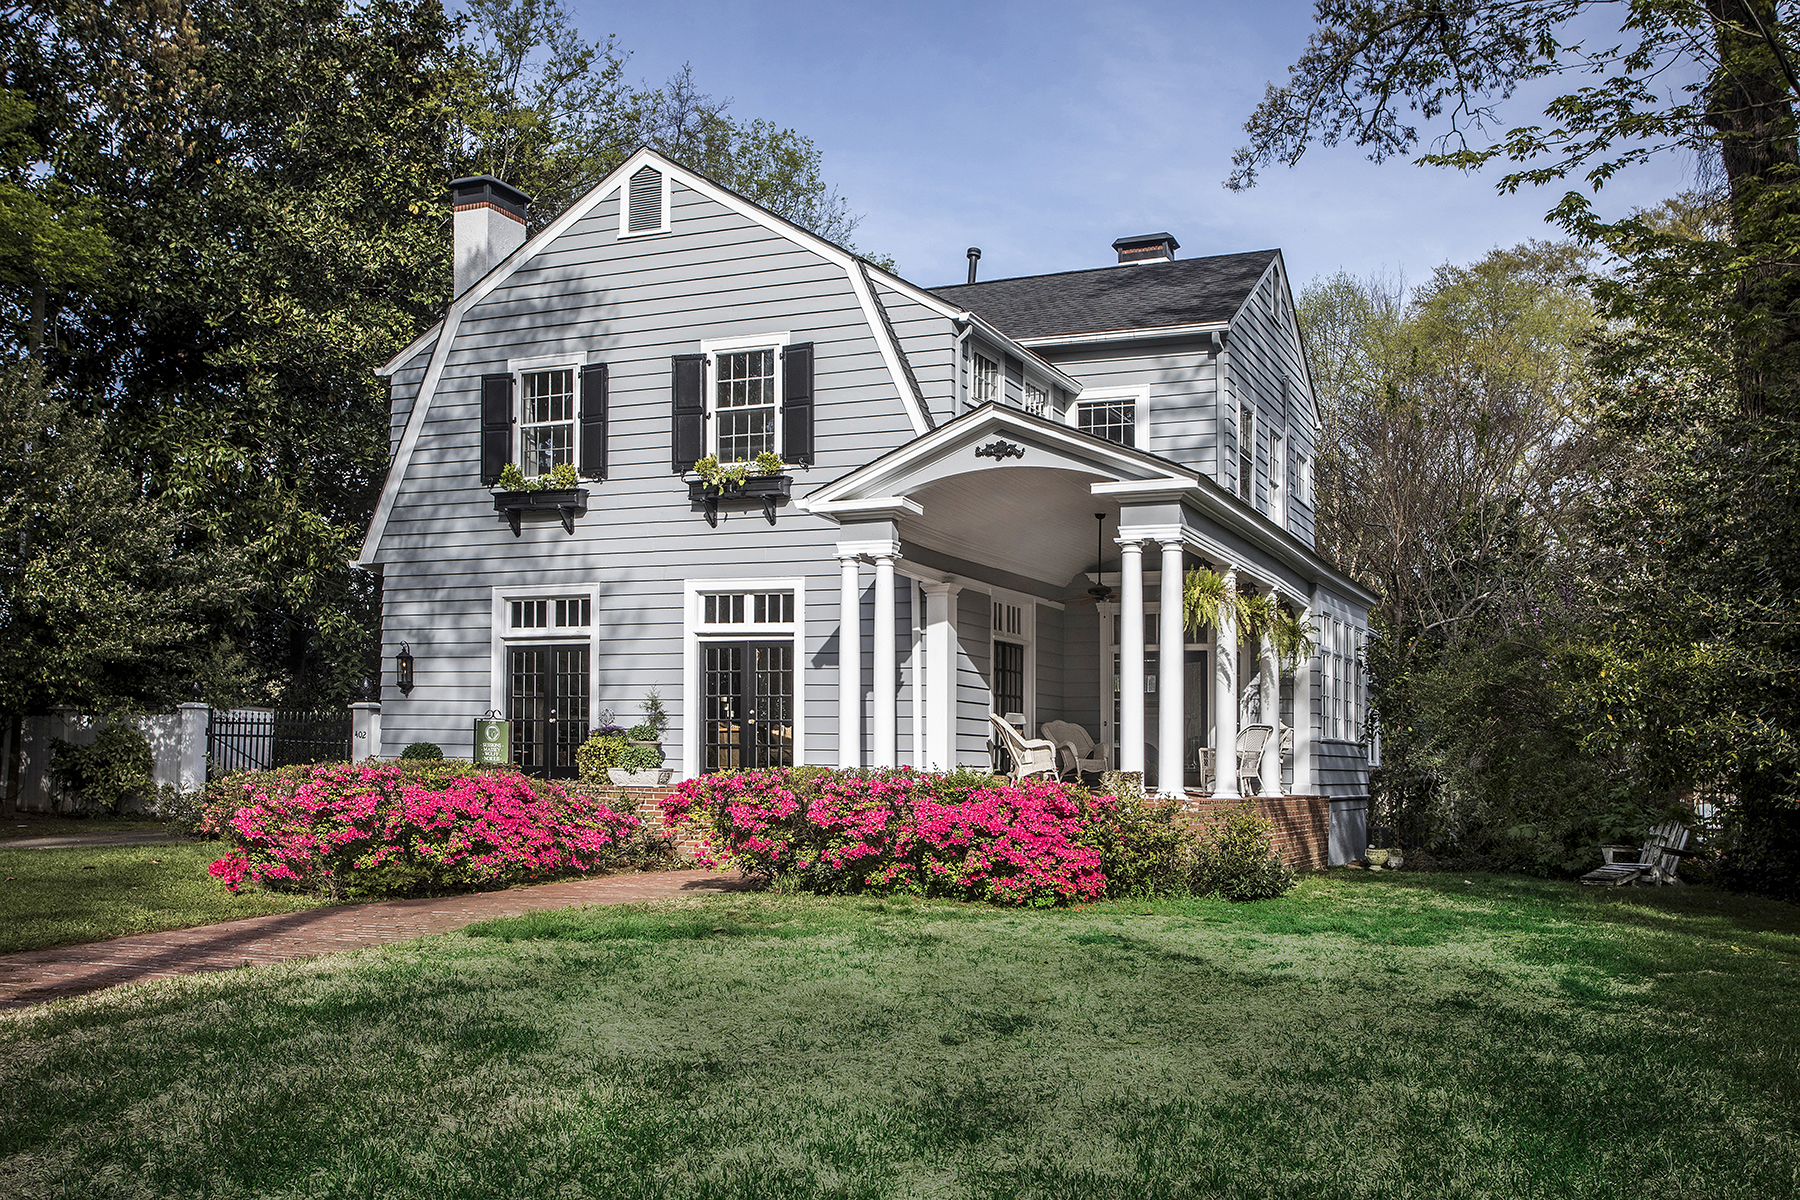 Single Family Home for Sale at A Historic Marietta Classic 402 Cherokee Street NE Marietta, Georgia 30060 United States